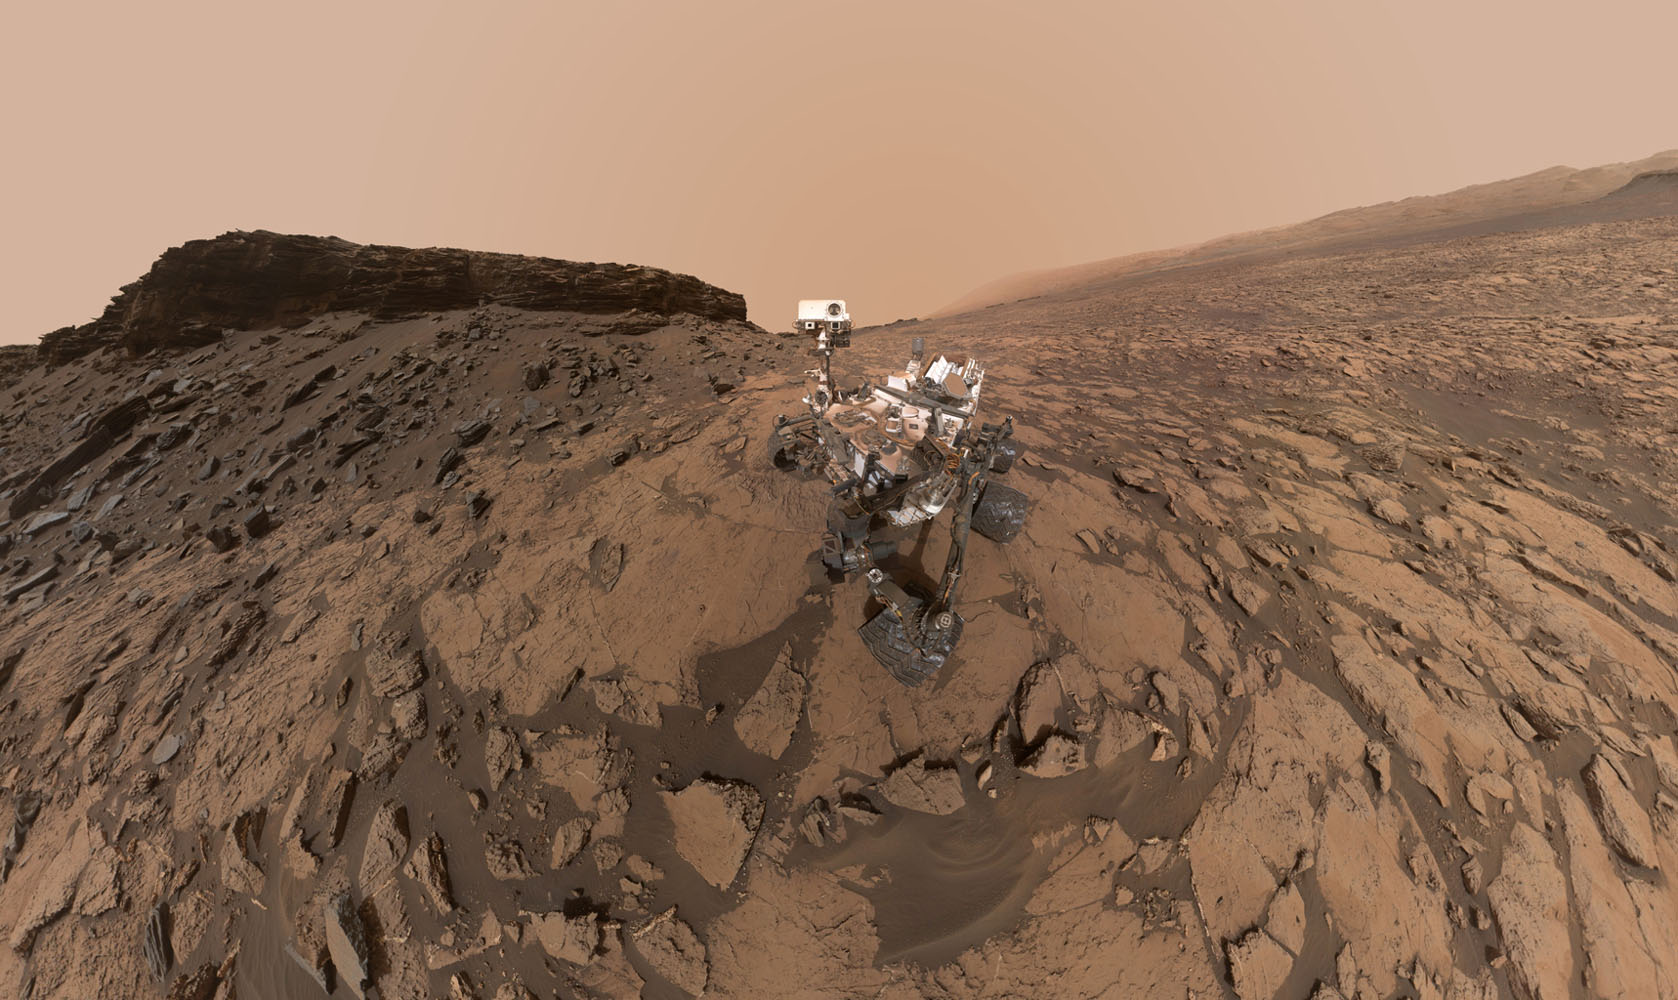 Curiosity Rover Snaps Amazing Selfie on Mars Mountain (Photo)